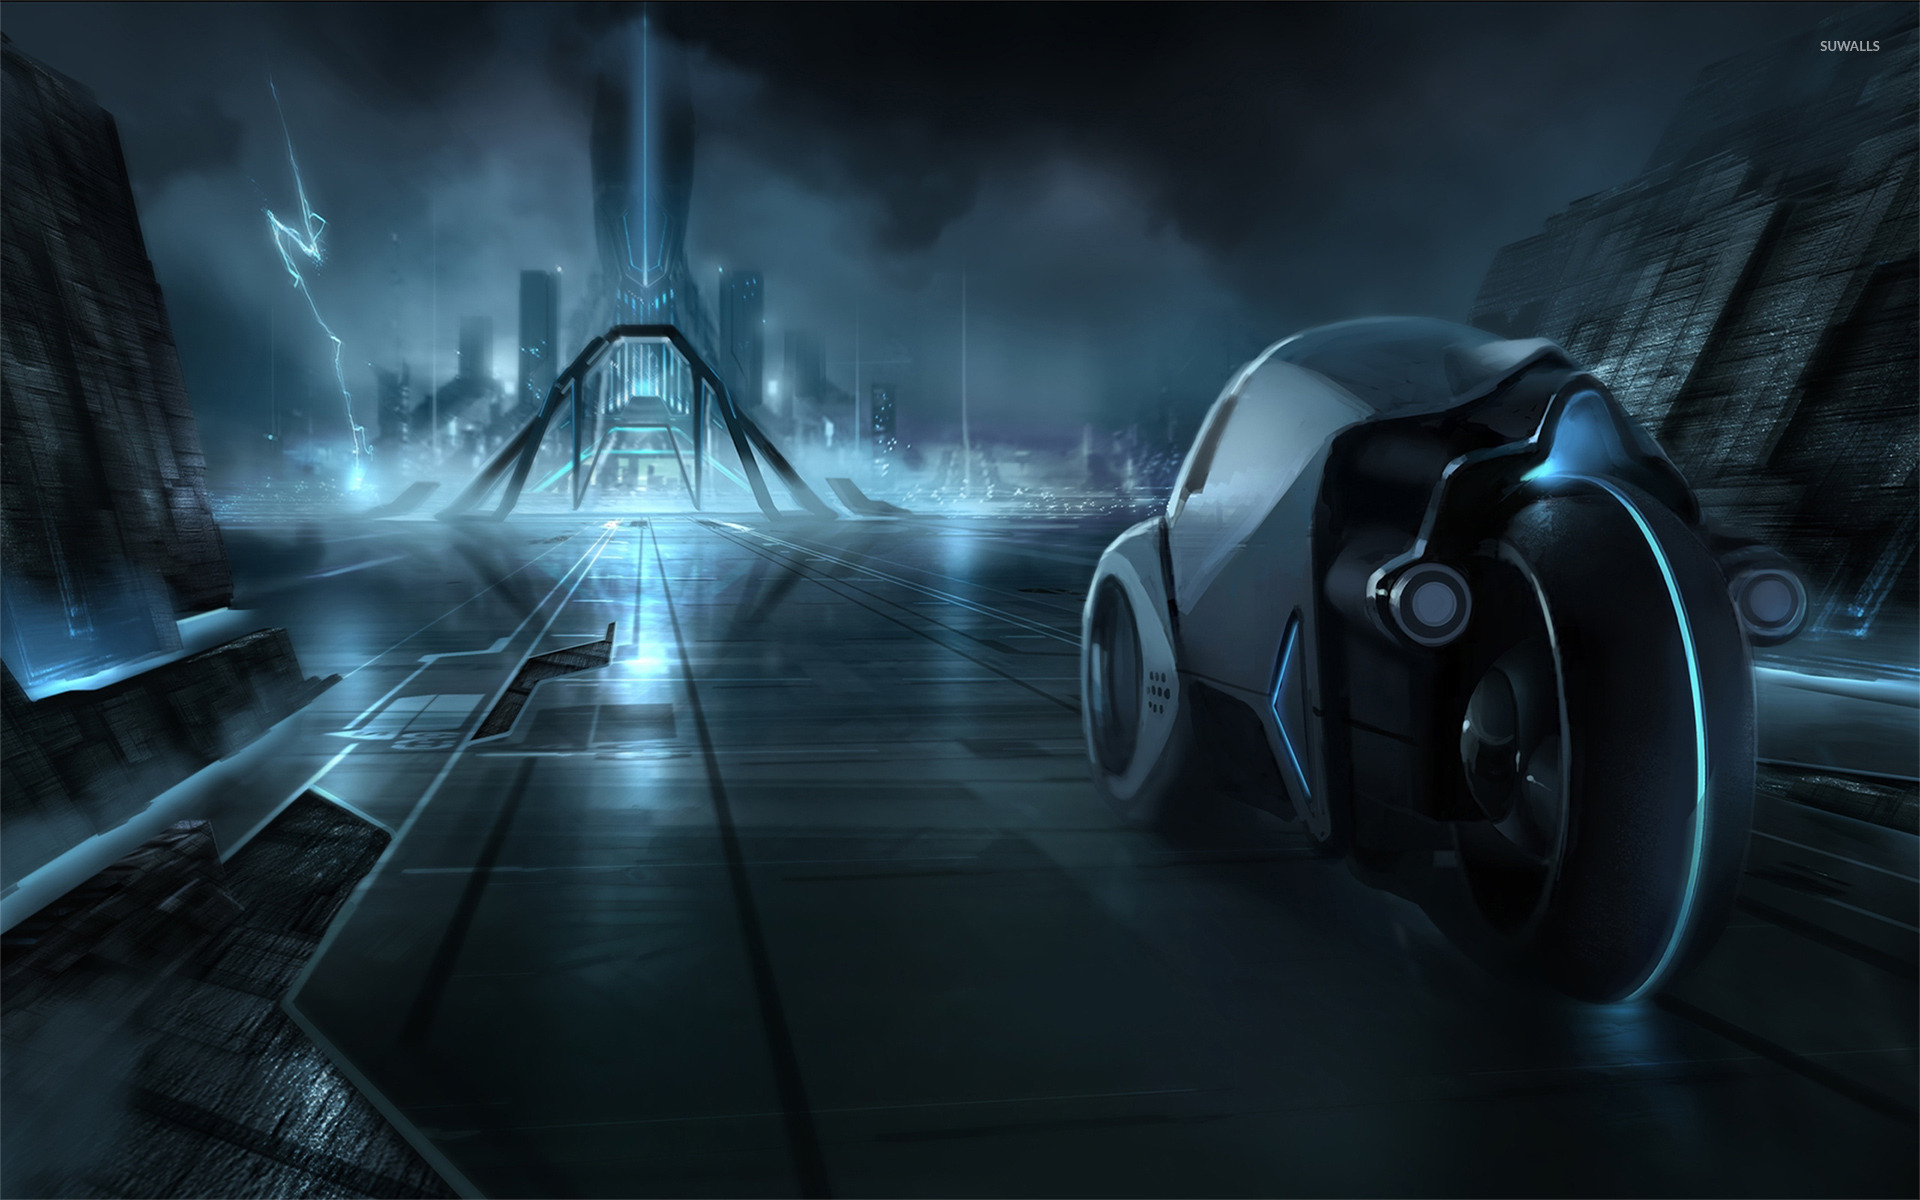 tron legacy [2] wallpaper - movie wallpapers - #31168